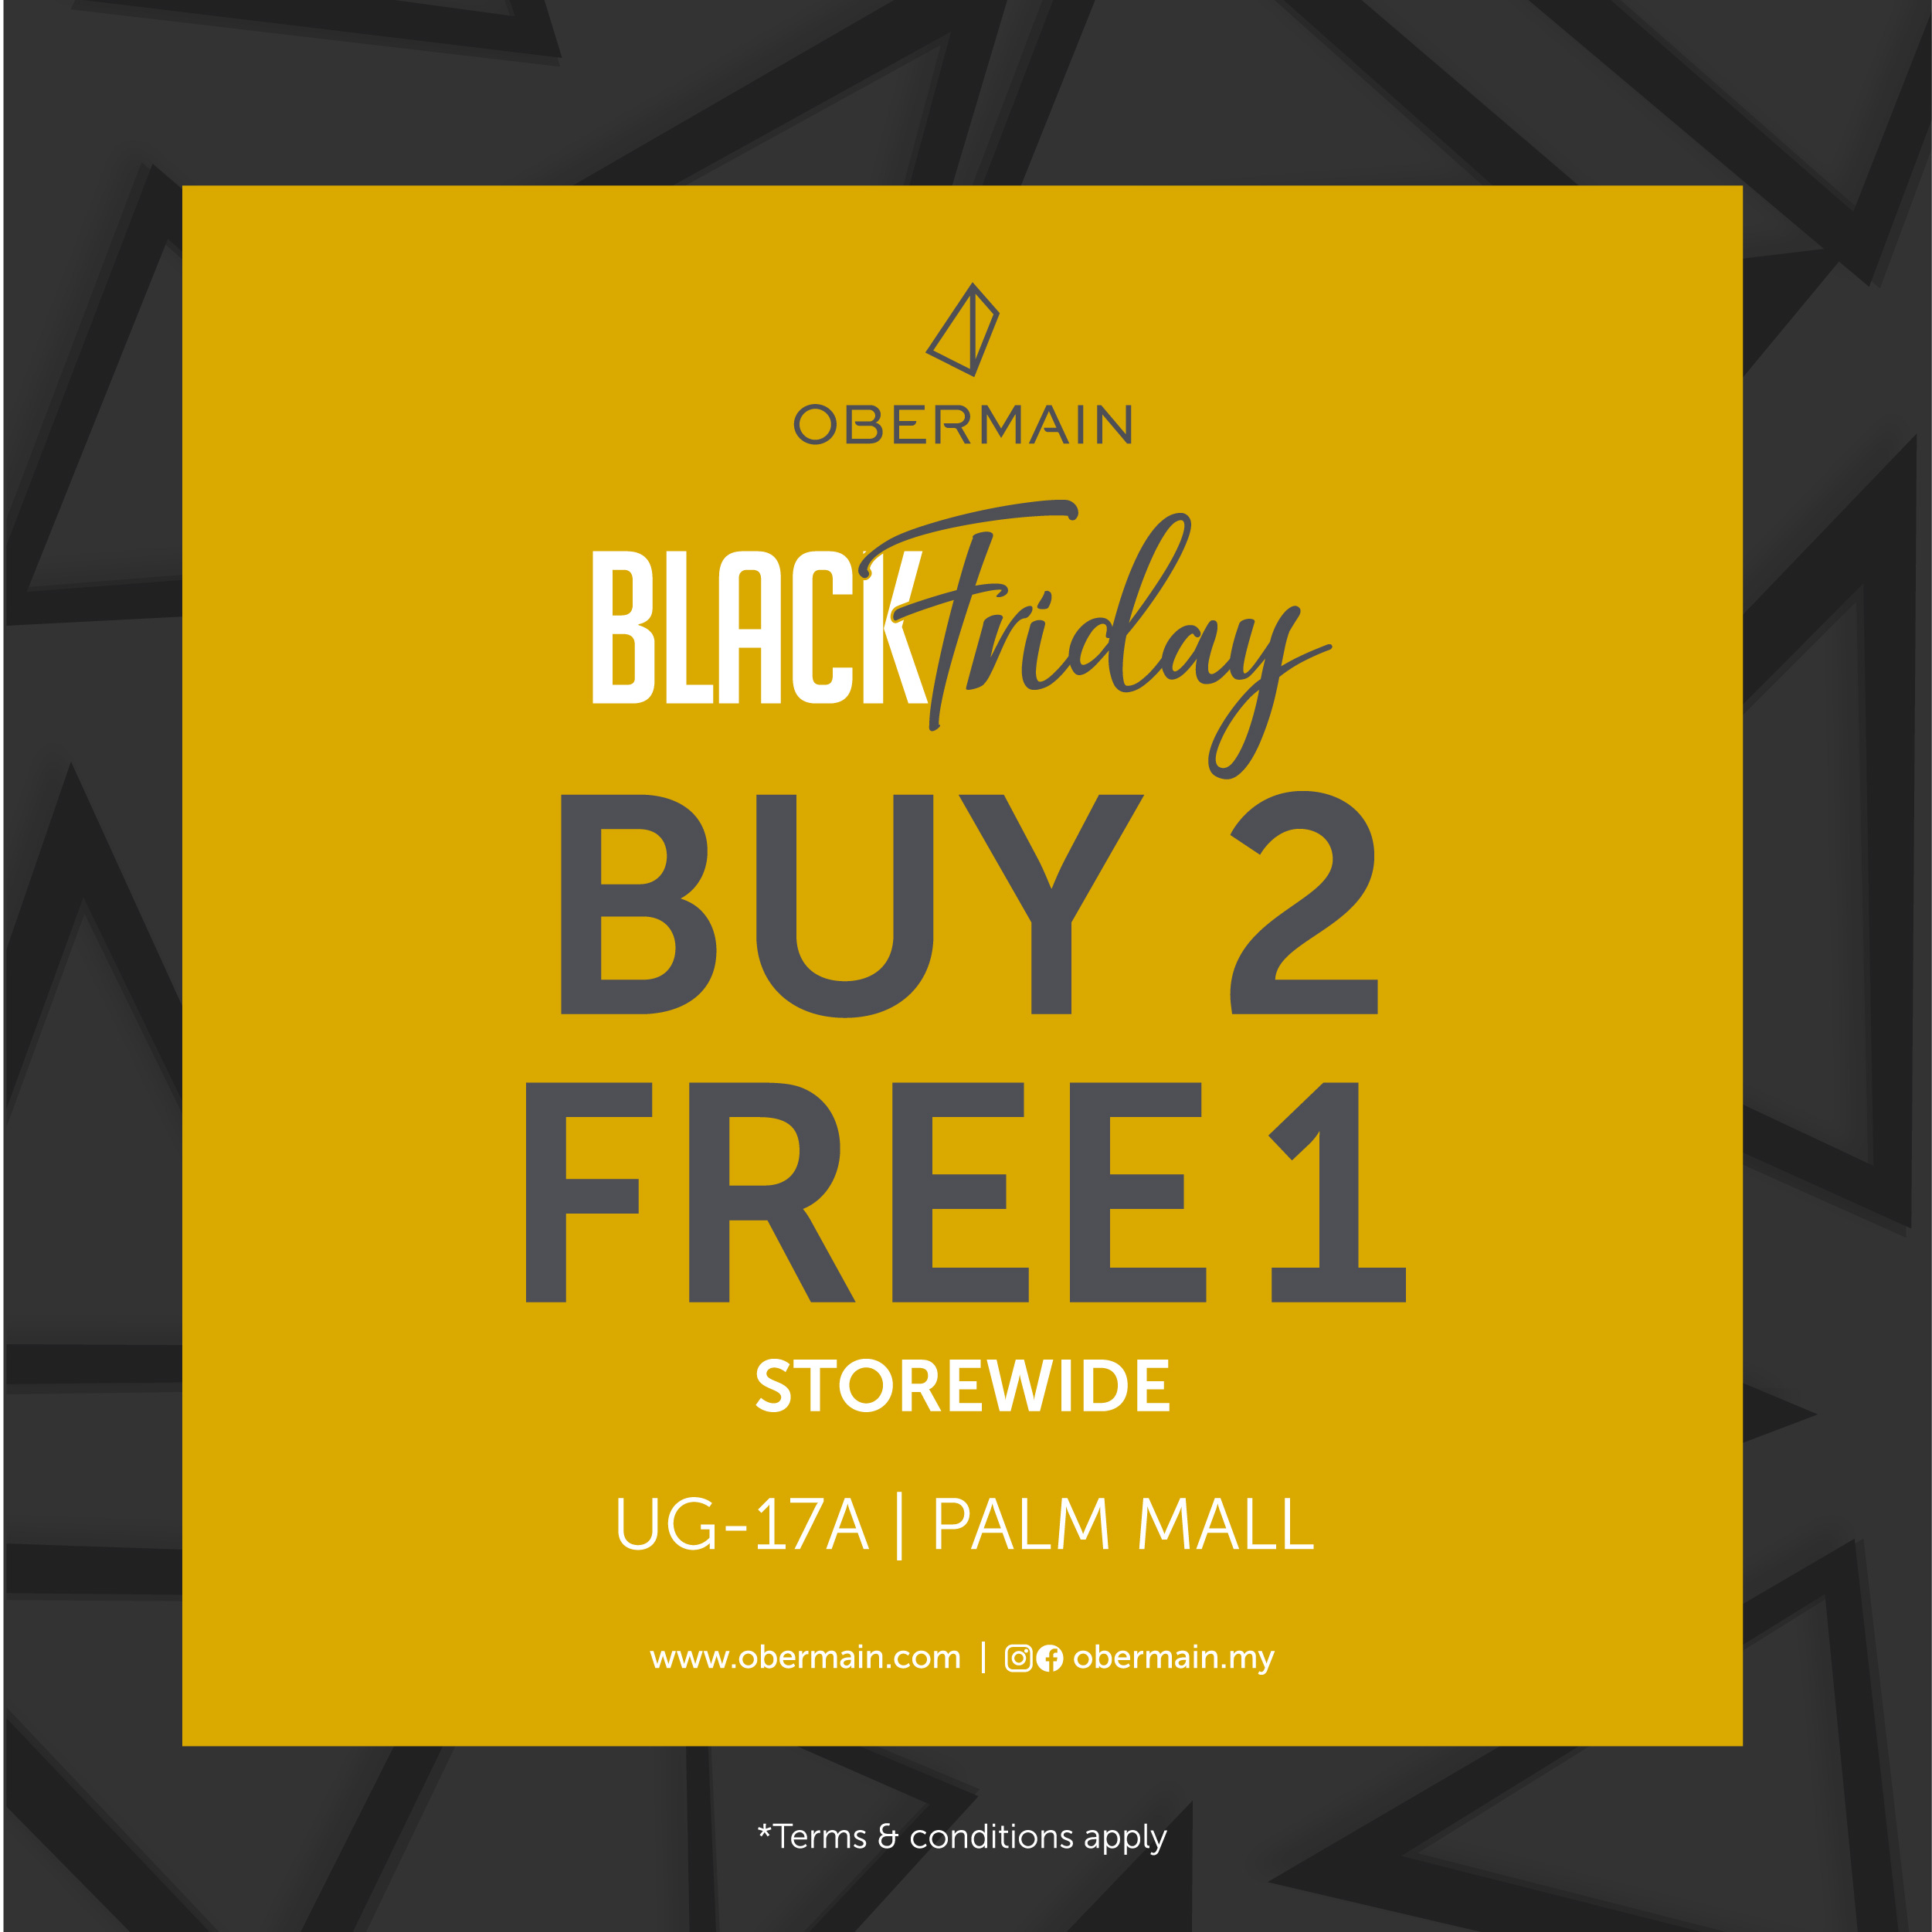 Obermain Black Friday